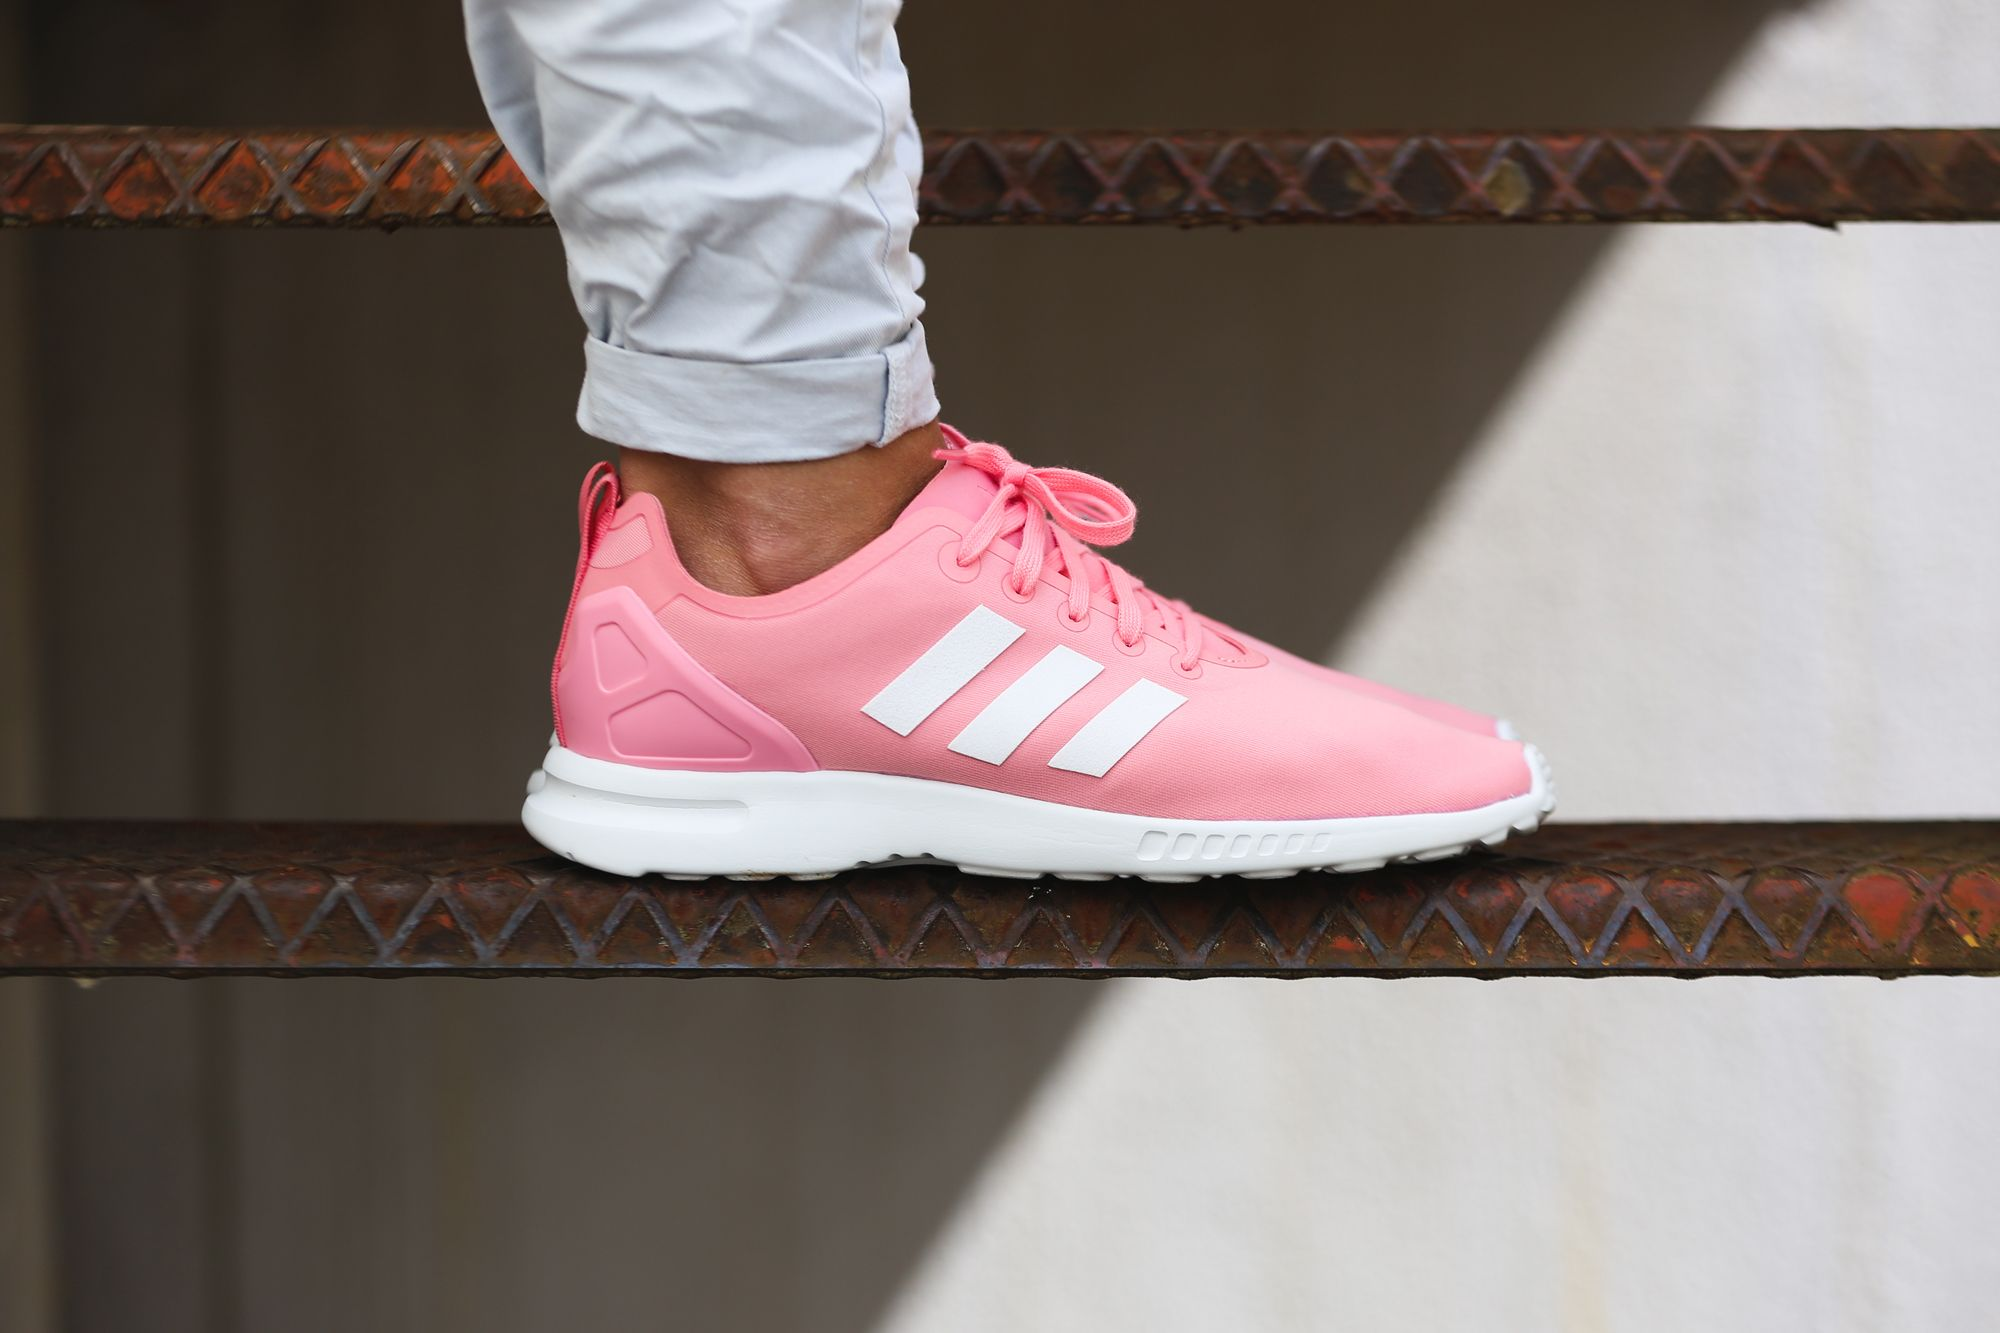 Unisex Adidas Zx8000 Boost Running Shoes White Casual Pink Happy To Own